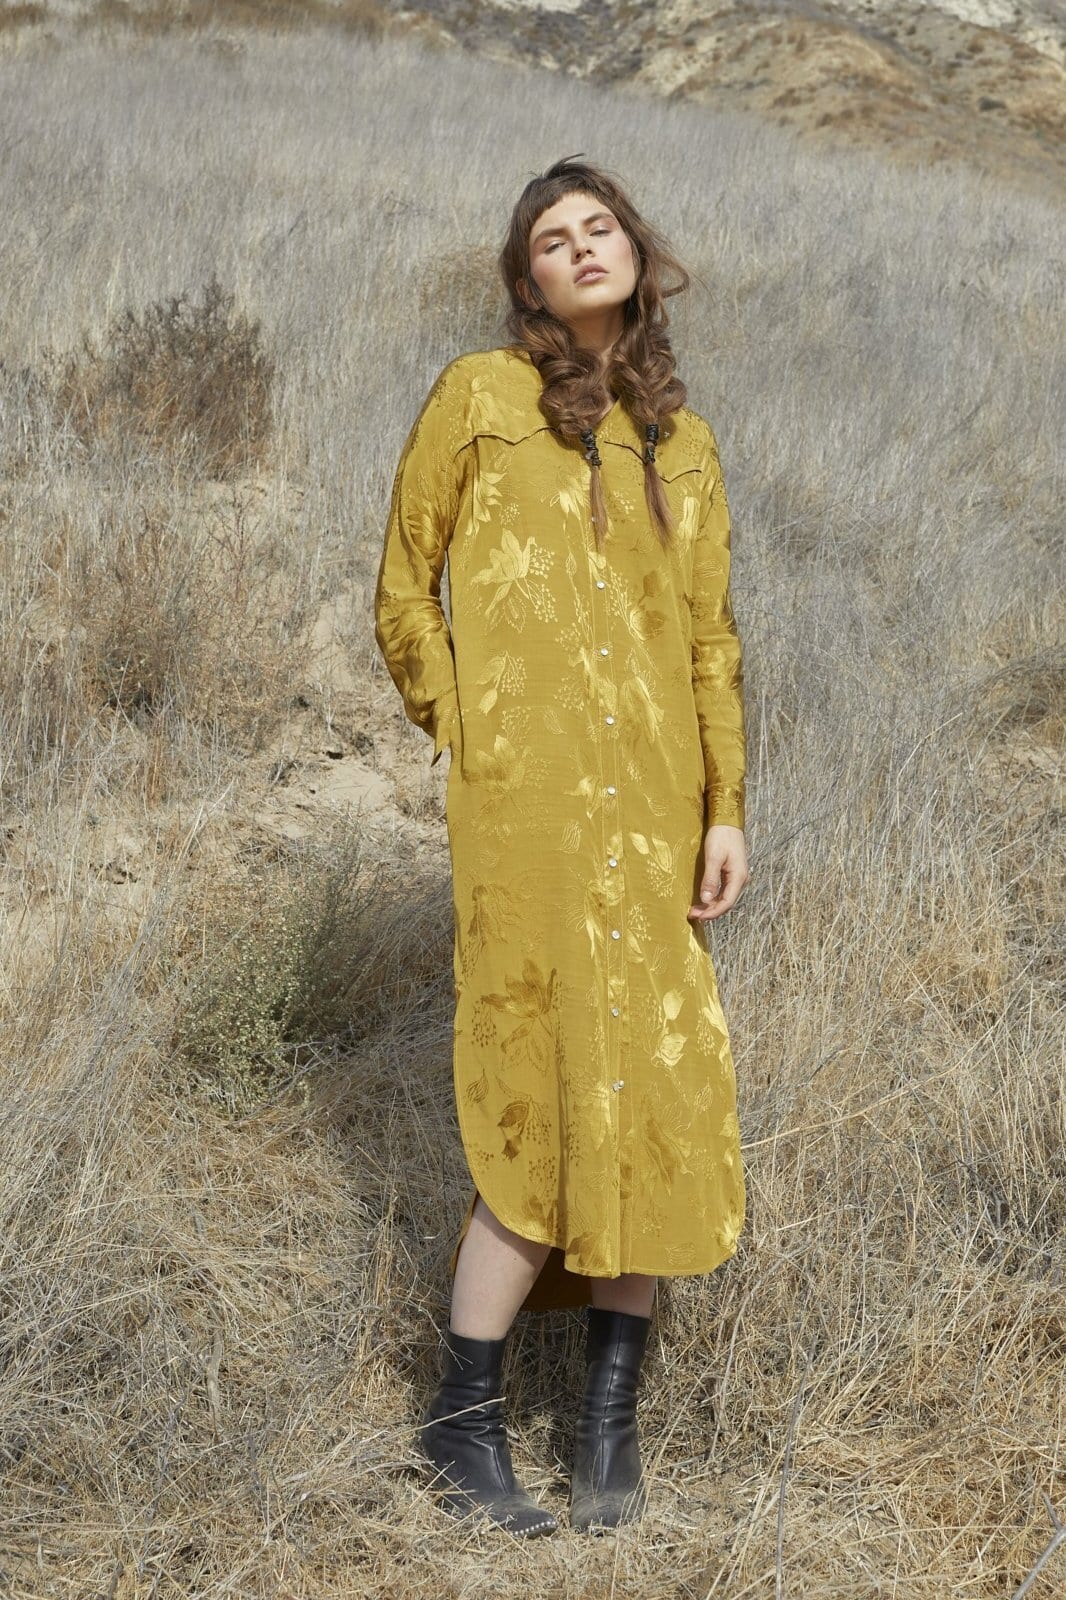 Western Willie Shirt Dress / Neighborhood Goods